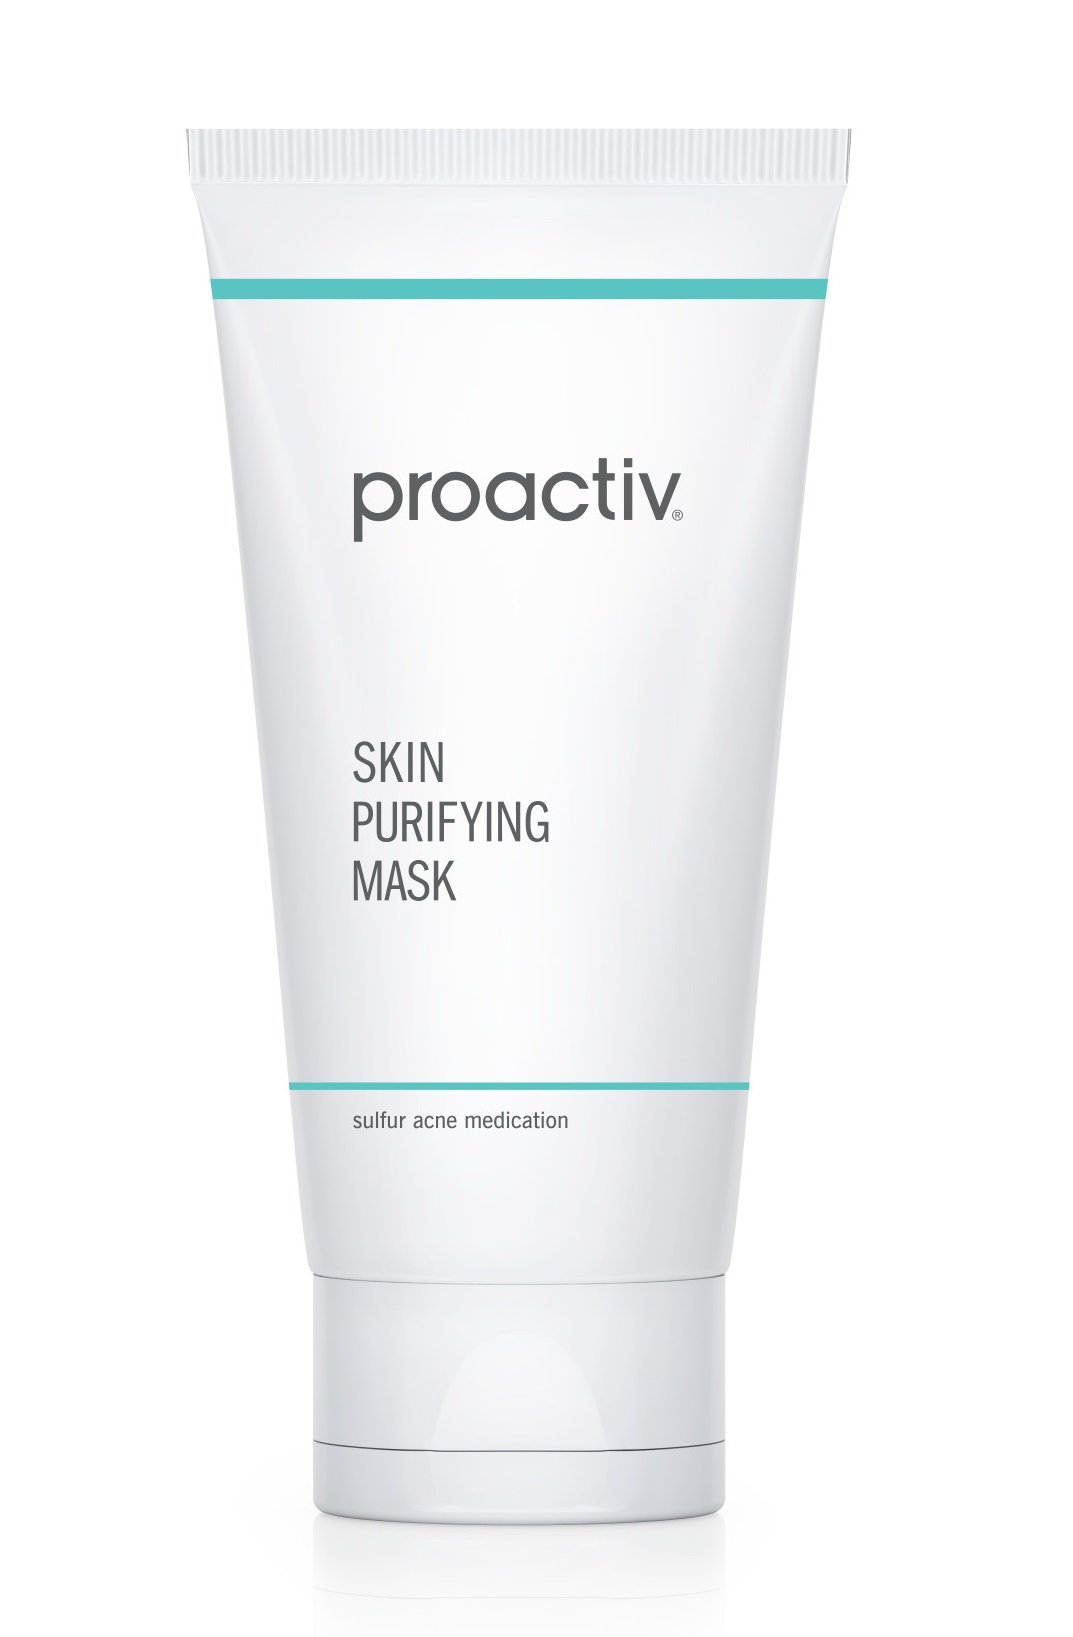 Proactiv Skin Purifying Mask, 3 Ounce (90 Day) by Proactiv